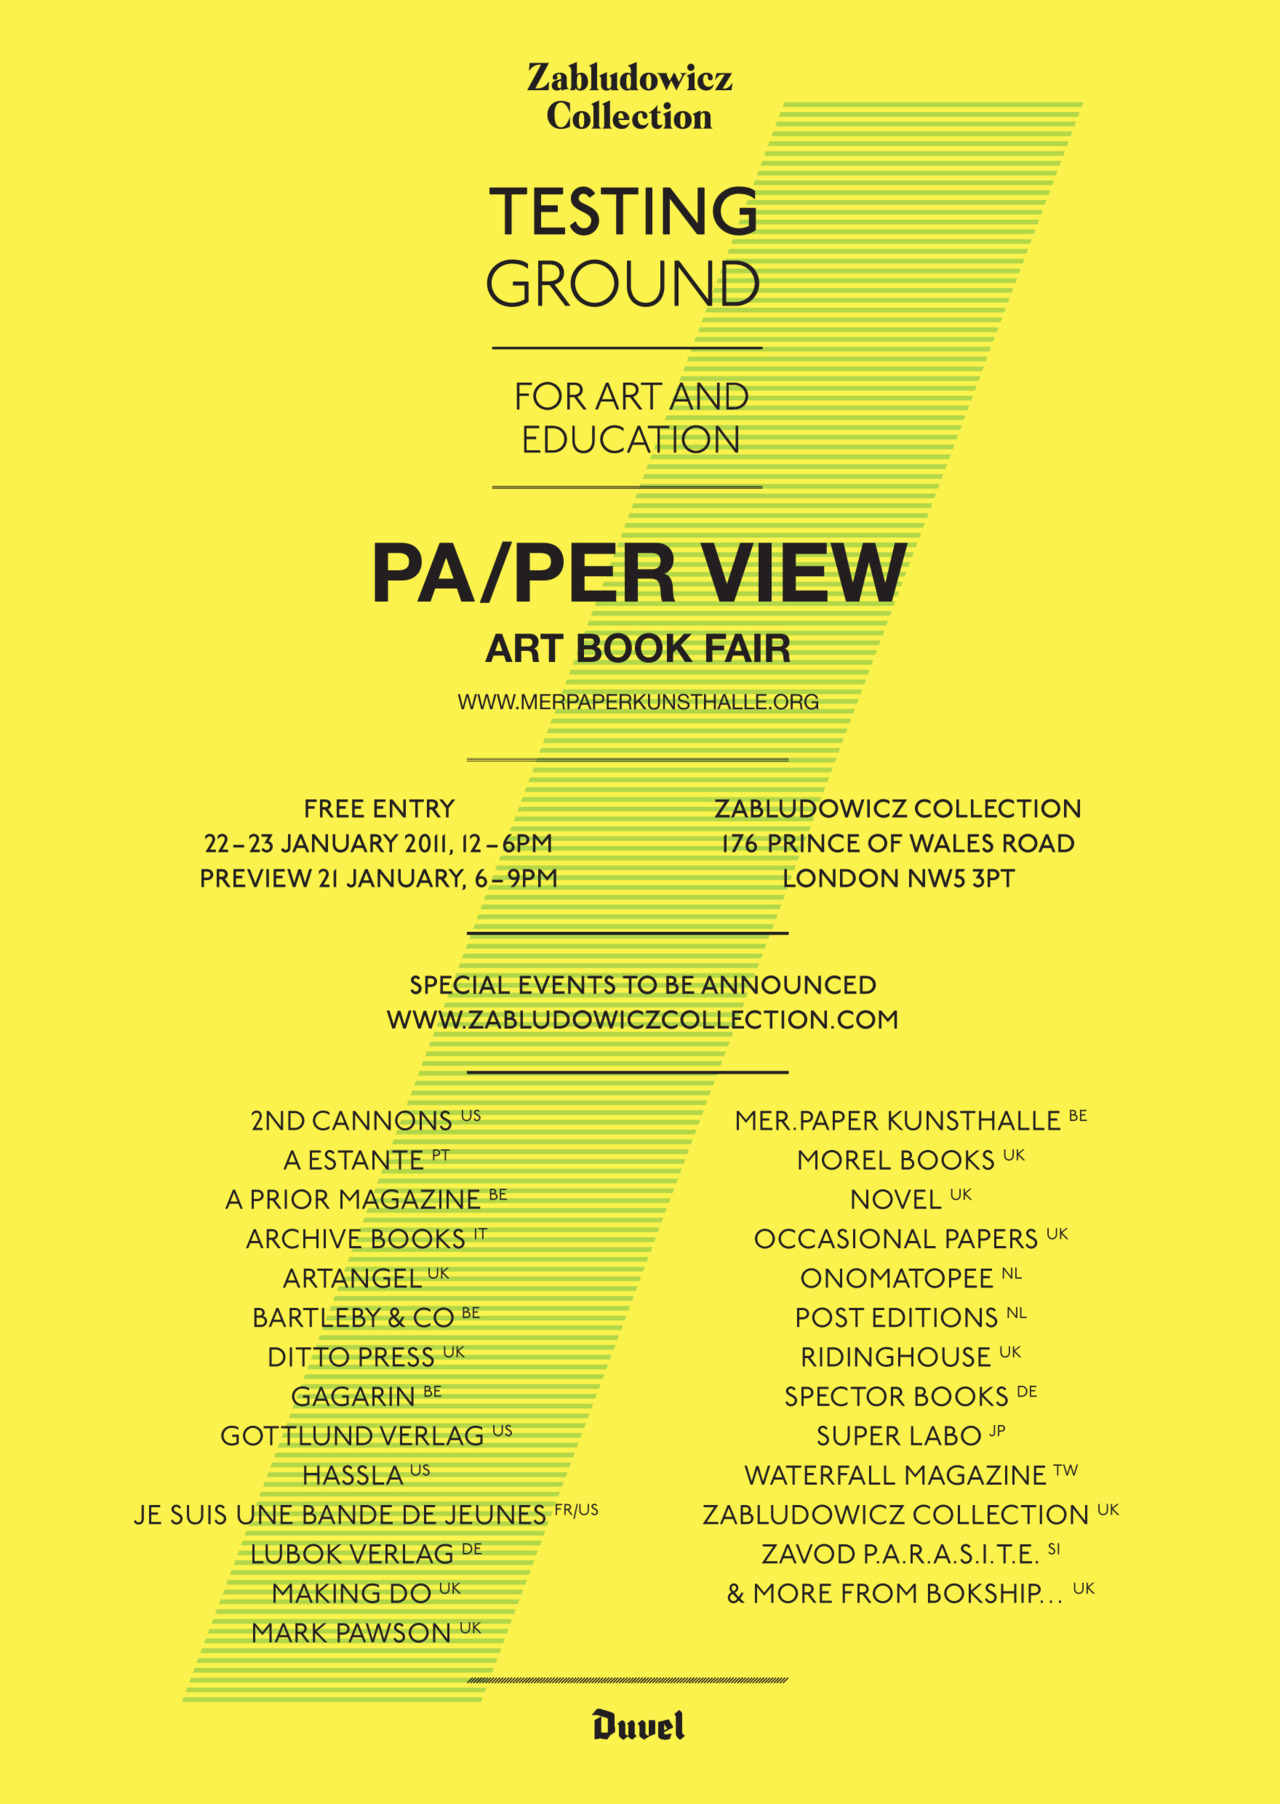 Art Book Fair 22-23 January 2011, 12-6pm  Preview 21 January, 6-9pm  http://www.paperviewartbookfair.org/archives.html    2nd Cannons  (US)  A Estante  (PT)  A Prior Magazine  (BE)  Archive Books  (IT)  Artangel  (UK)  Bartleby & Co  (BE)  Ditto Press  (UK)  Eastside Projects  (UK)  Gagarin  (BE)  Gottlund Verlag  (US)  Hassla  (US)  Je Suis Une Bande De Jeunes  (FR/US)  Lubok Verlag  (DE)  Making Do  (UK)  Mark Pawson  (UK)  MER.Paper Kunsthalle  (BE)  MONO  (UK)  Morel Books  (UK)  Novel  (UK)  Occasional Papers  (UK)  Onomatopee  (NL)  Post Editions  (NL)  Ridinghouse  (UK)  Spector Books  (DE)  Super Labo  (JP)  Waterfall Magazine  (TW)  Zabludowicz Collection  (UK)  Zavod P.A.R.A.S.I.T.E.  (SI)  & more from Bokship ….(UK)